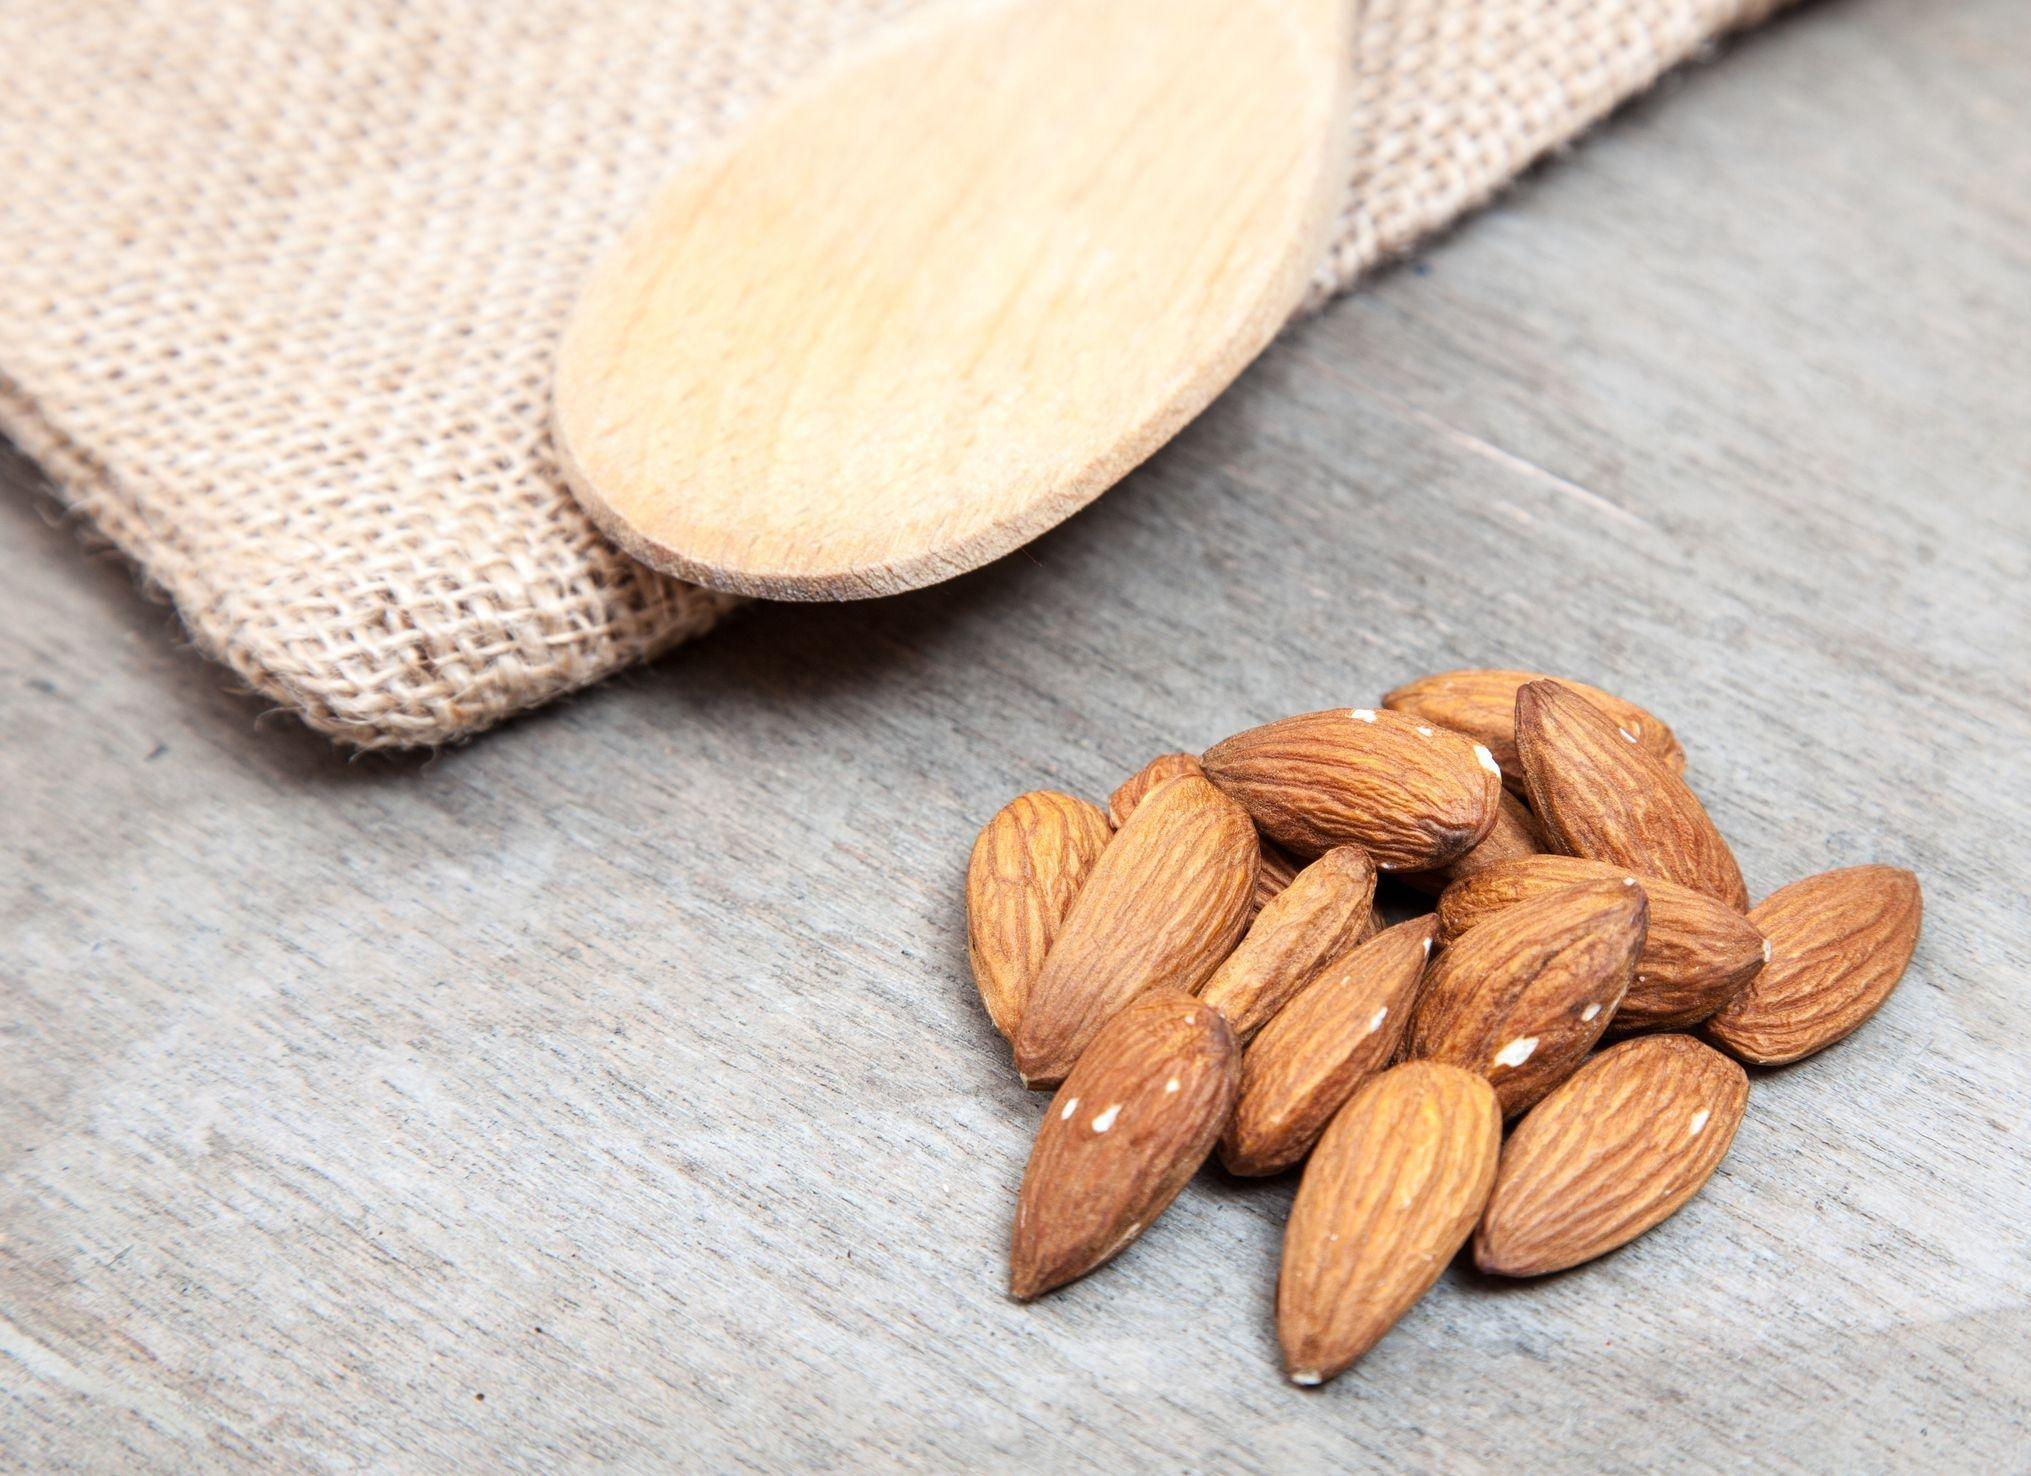 Health Benefits Of Almonds For People With Diabetes